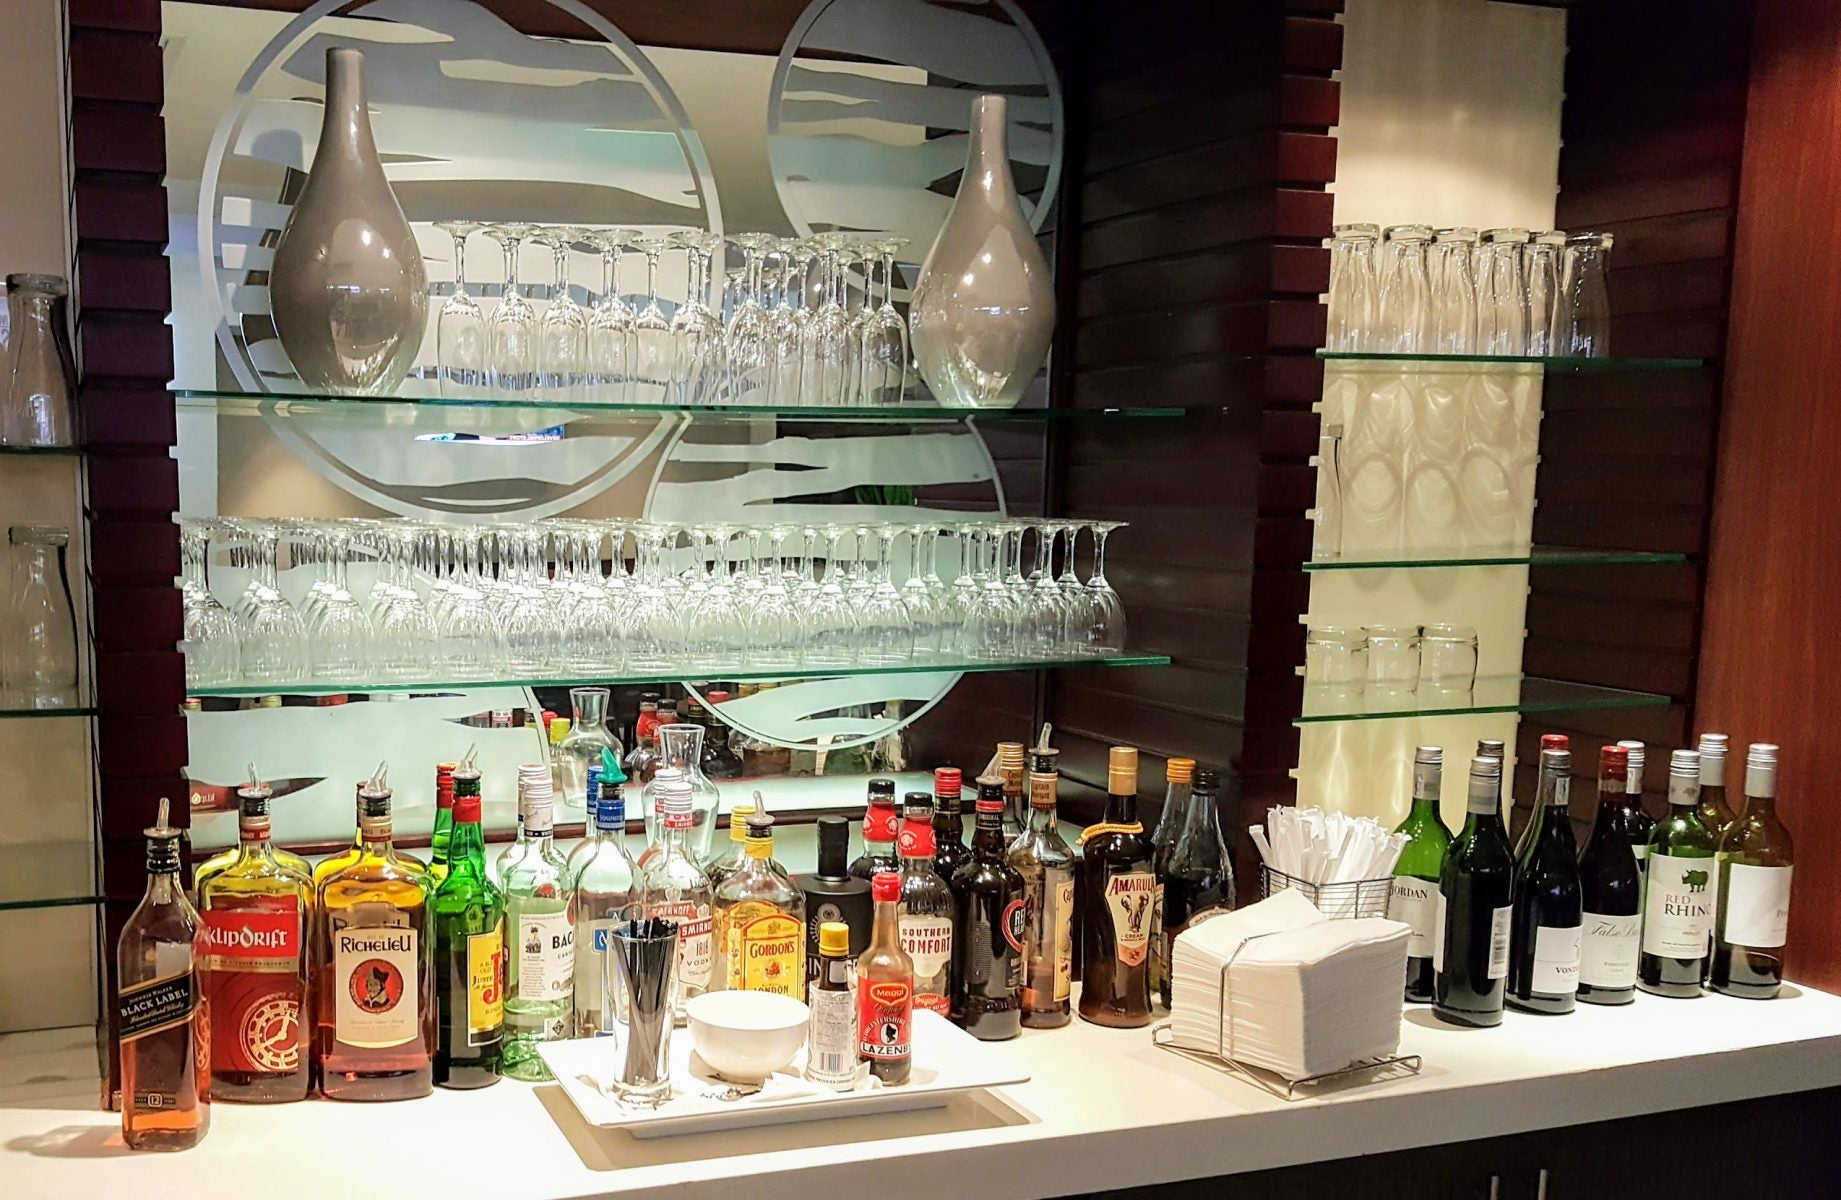 The Best Strategy for Folks Who Want to Inexpensively Try Out Airport Lounges